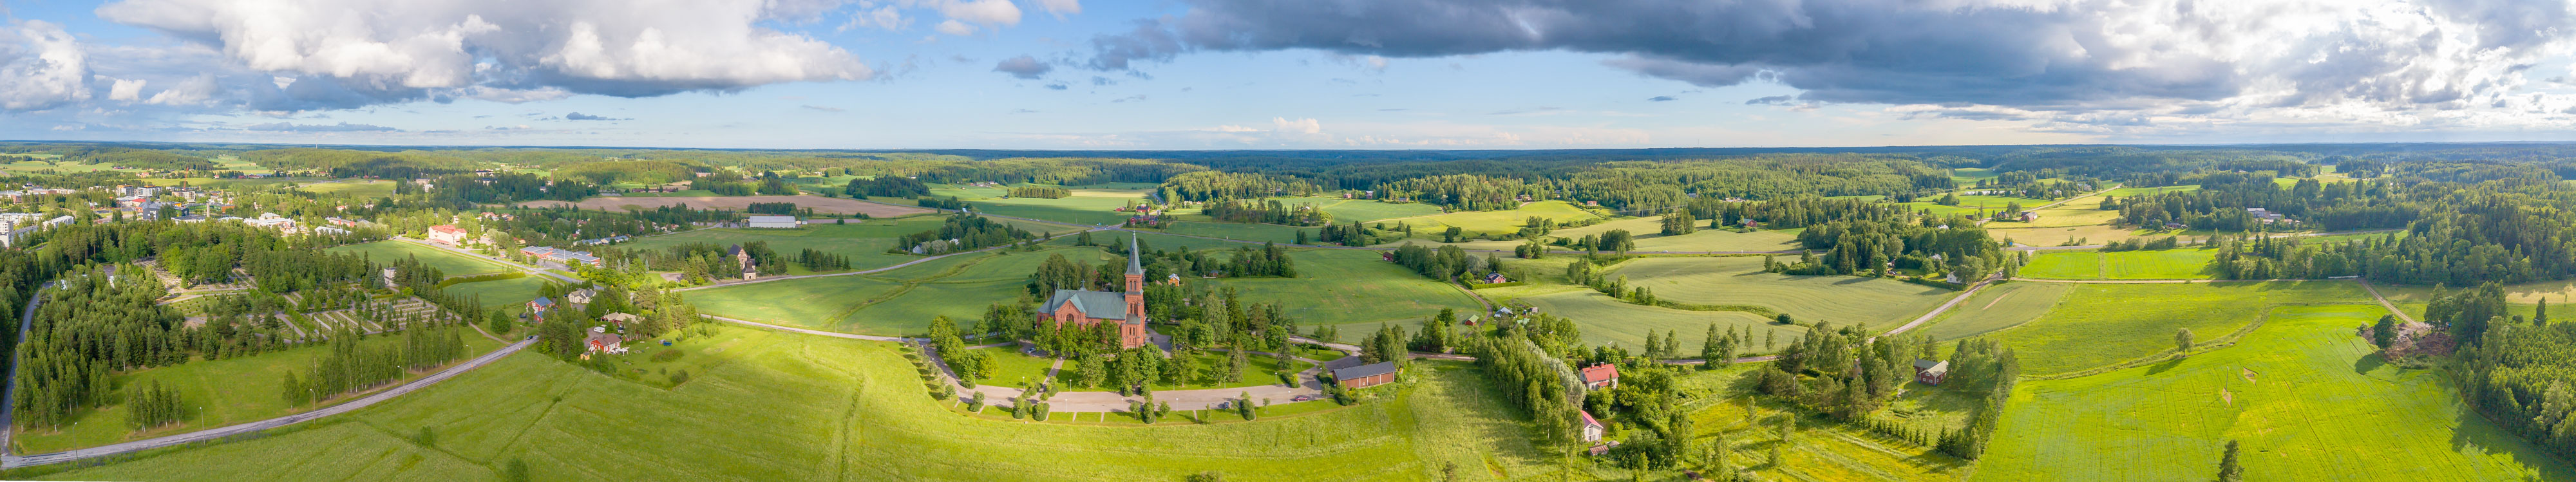 And in the middle there is a church. Landscape from Sipoo Finland